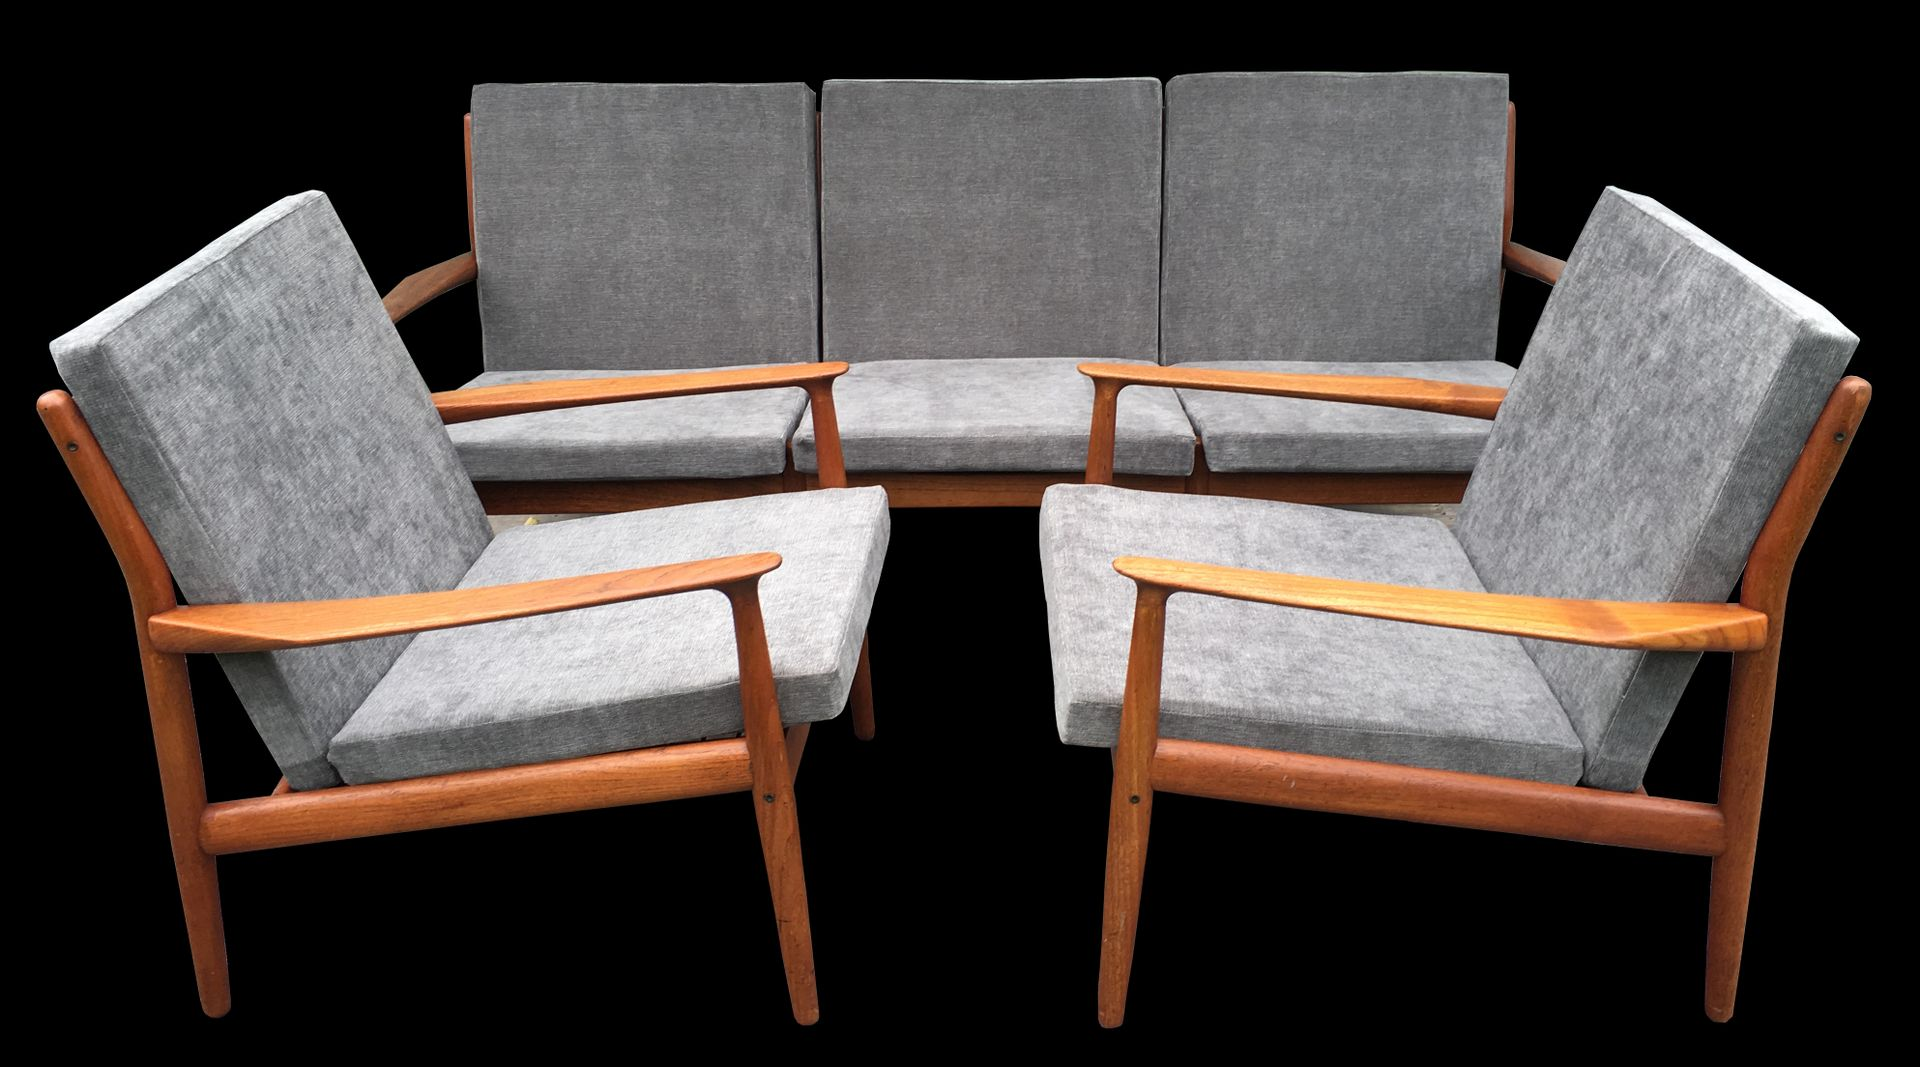 Teak Sofa Armchairs By Greta Jalk 1960s For Sale At Pamono